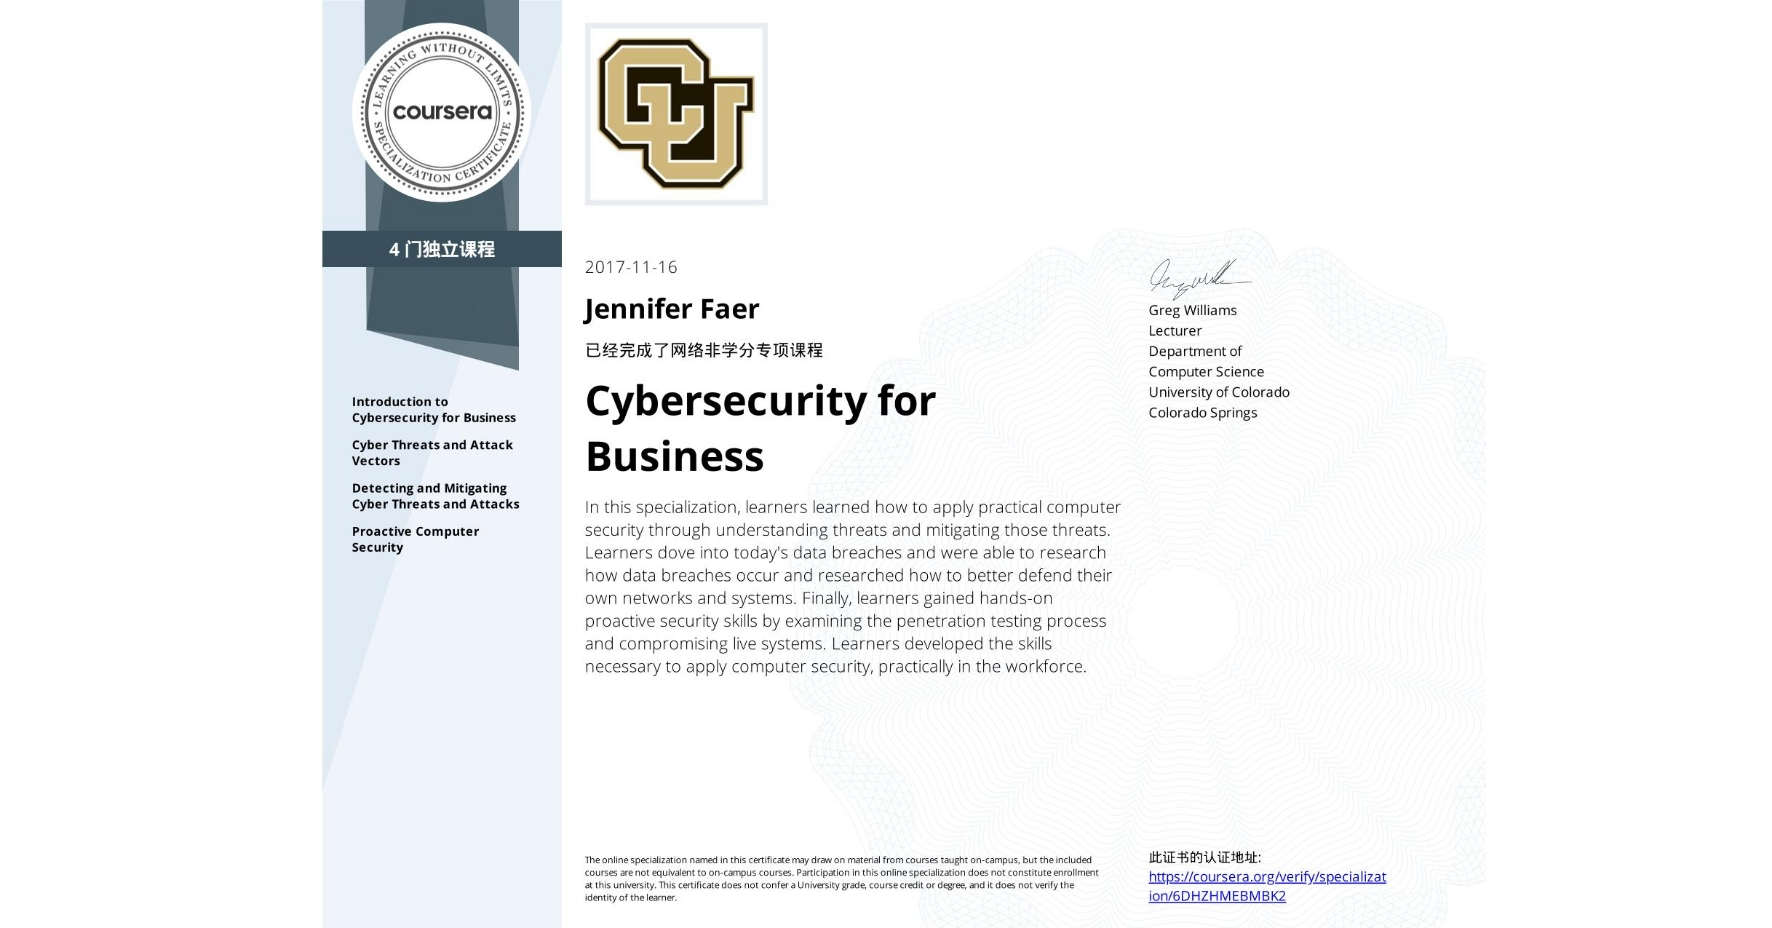 View certificate for Jennifer Faer, Cybersecurity for Business, offered through Coursera. In this specialization, learners learned how to apply practical computer security through understanding threats and mitigating those threats.  Learners dove into today's data breaches and were able to research how data breaches occur and researched how to better defend their own networks and systems.  Finally, learners gained hands-on proactive security skills by examining the penetration testing process and compromising live systems.  Learners developed the skills necessary to apply computer security, practically in the workforce.